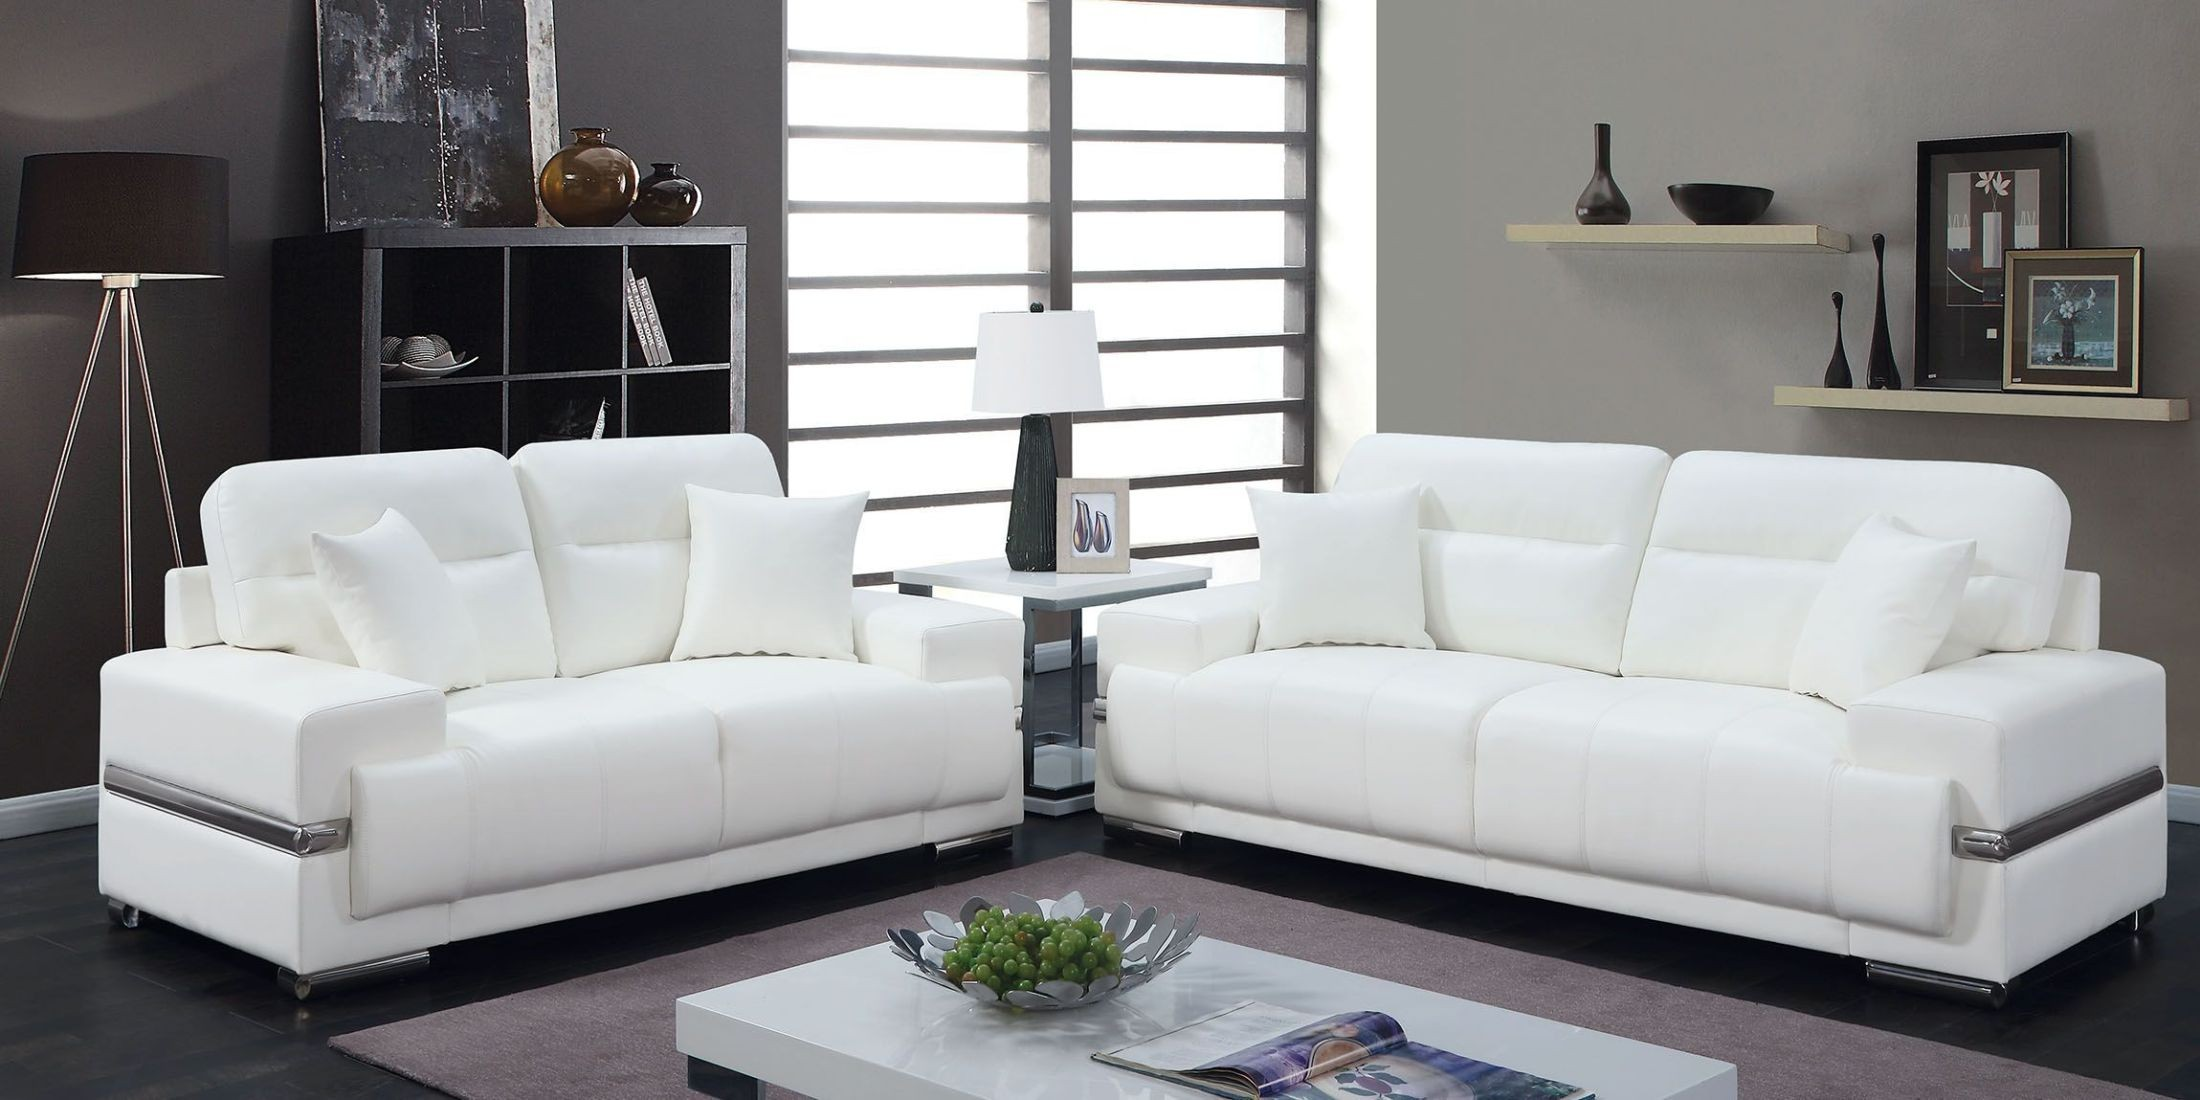 Zibak White Living Room Set from Furniture of America | Coleman ...